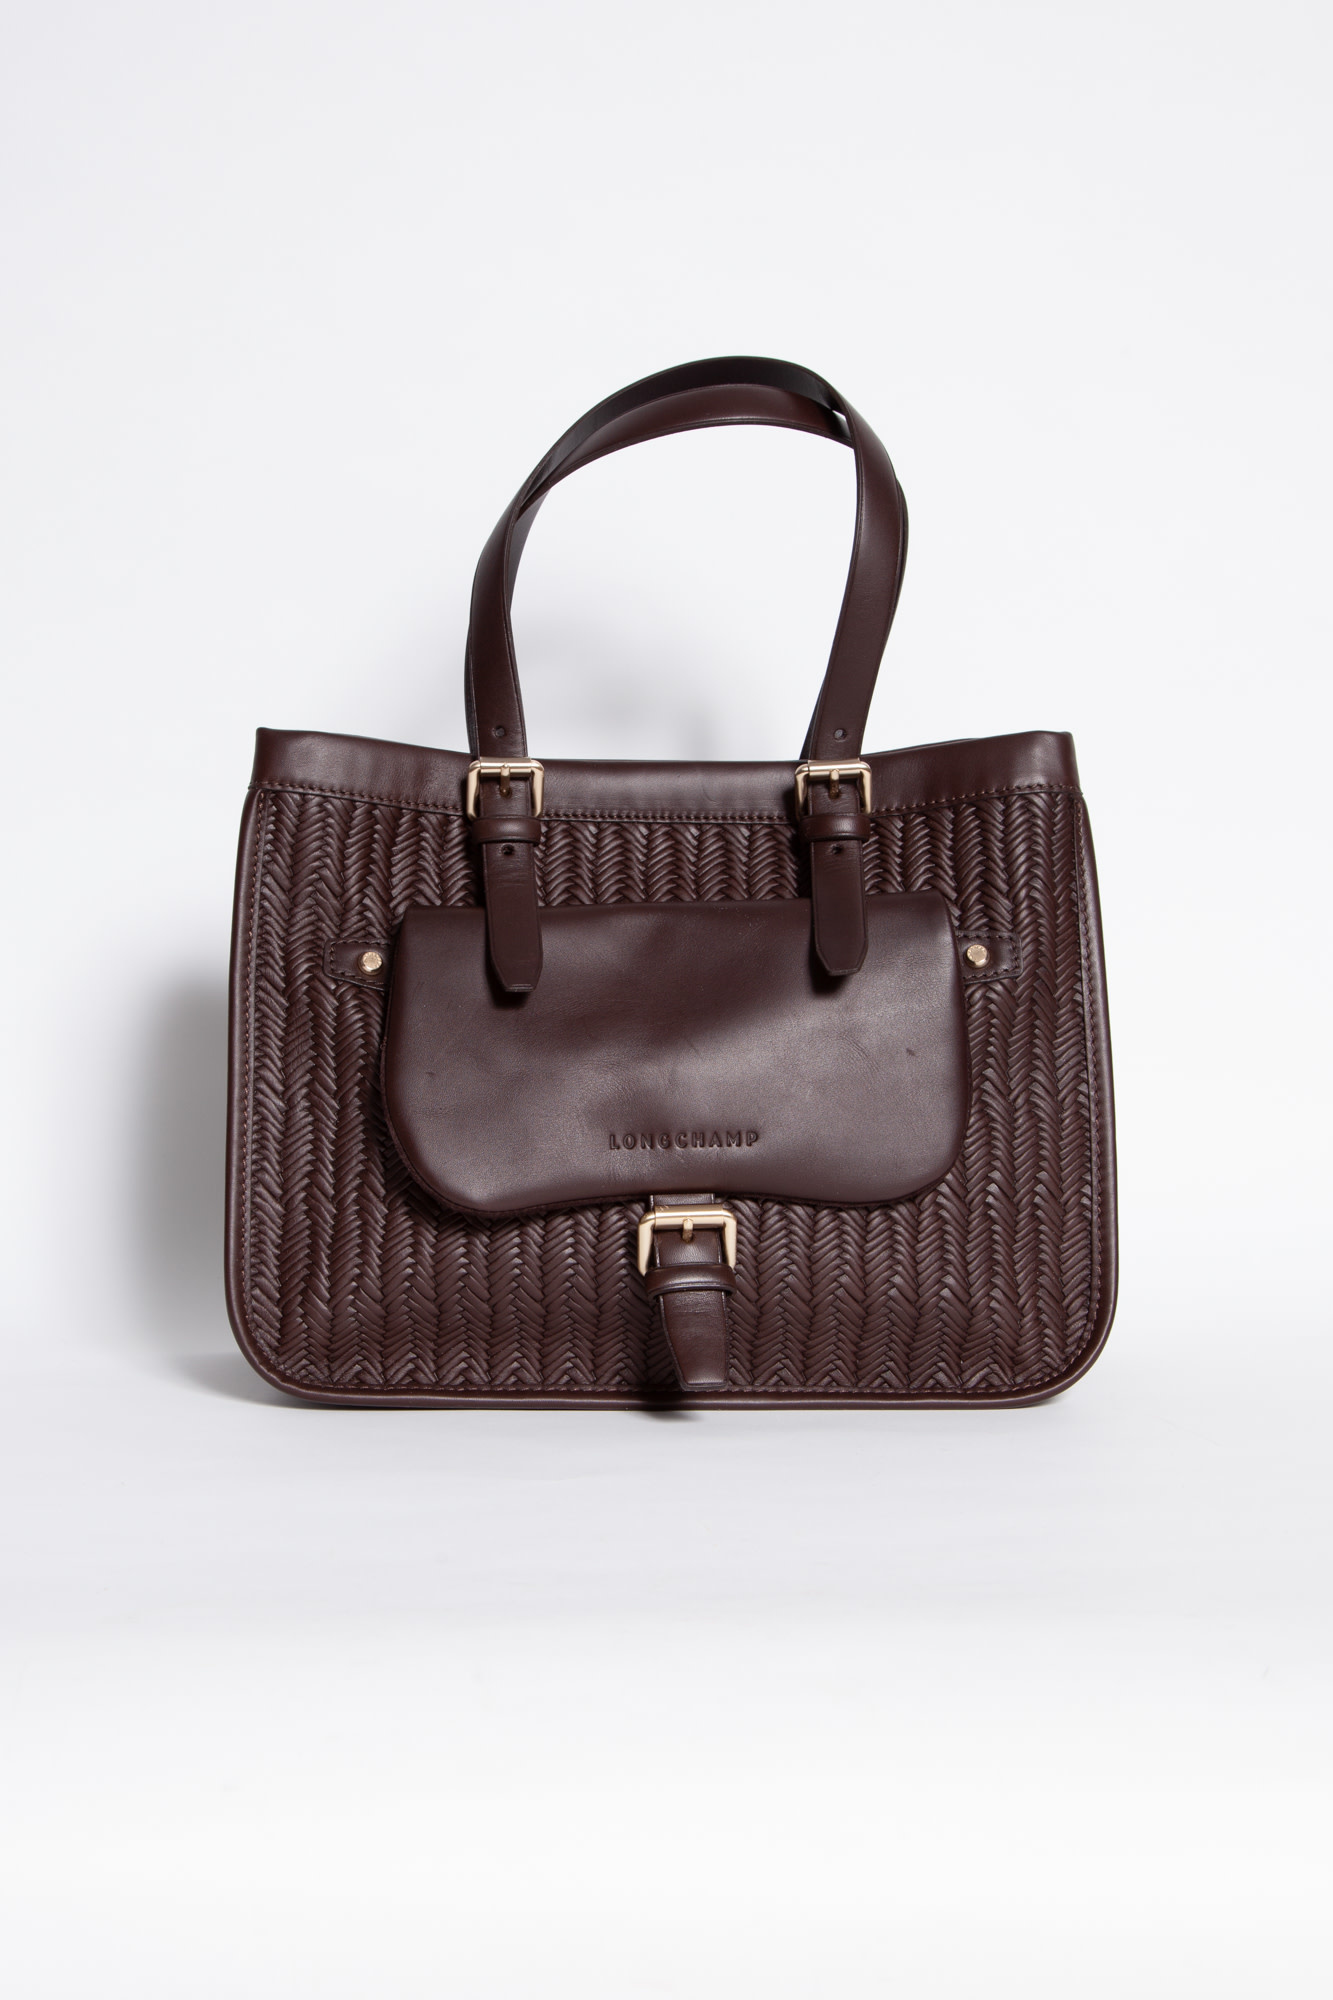 Longchamp BROWN BRAIDED LEATHER BAG WITH FRONT POCKET